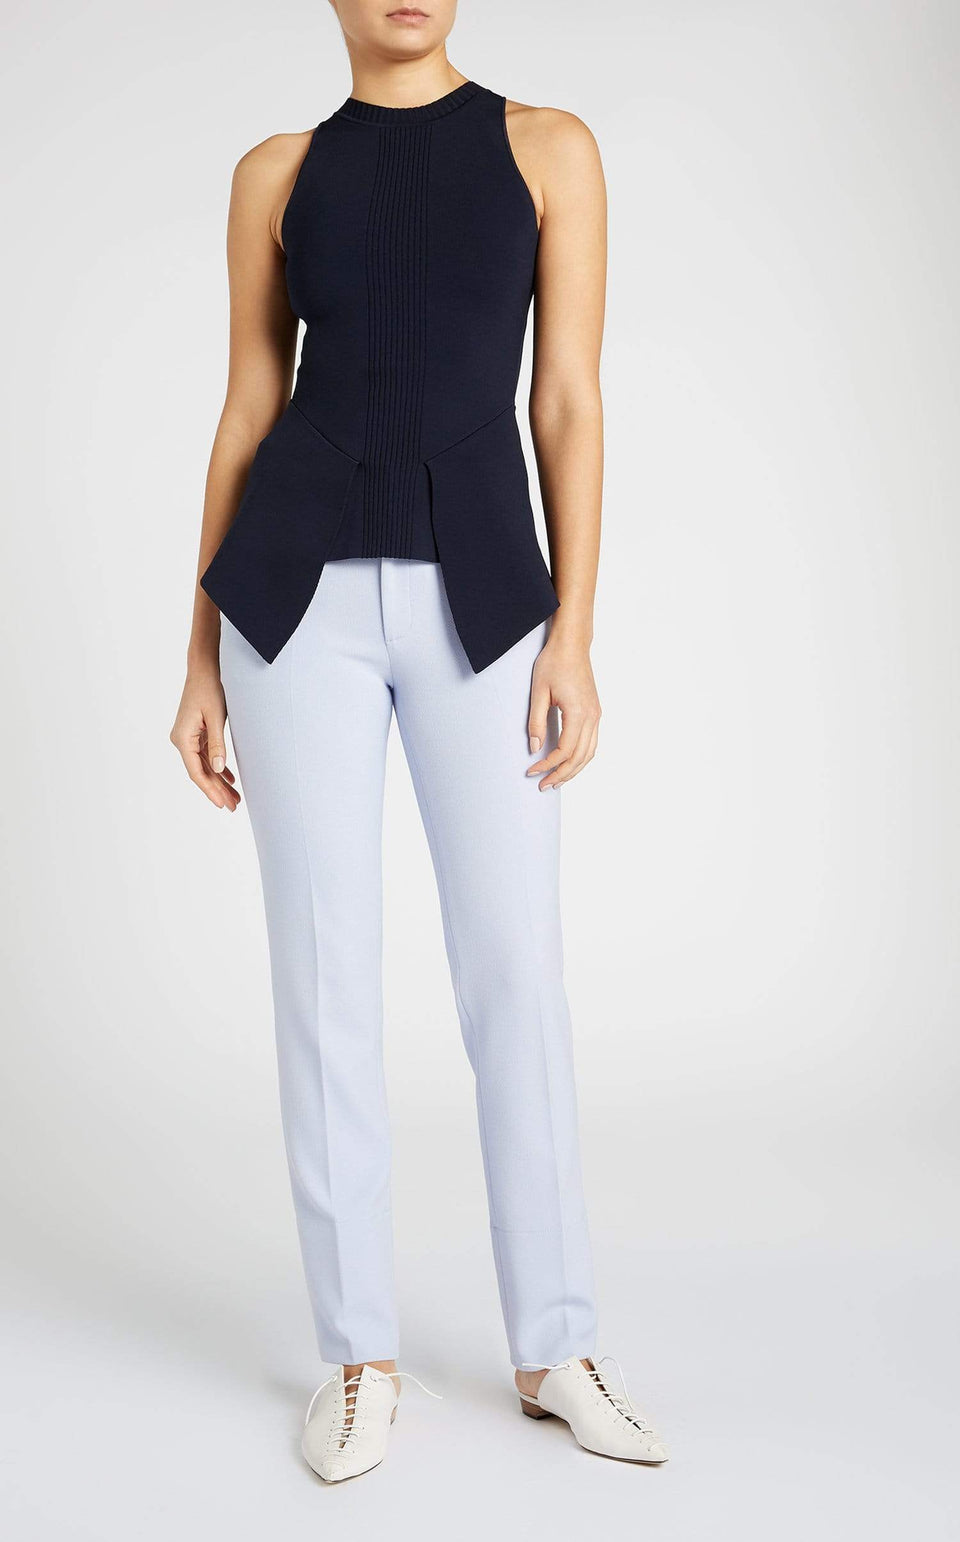 Lawrence Top In Navy from Roland Mouret